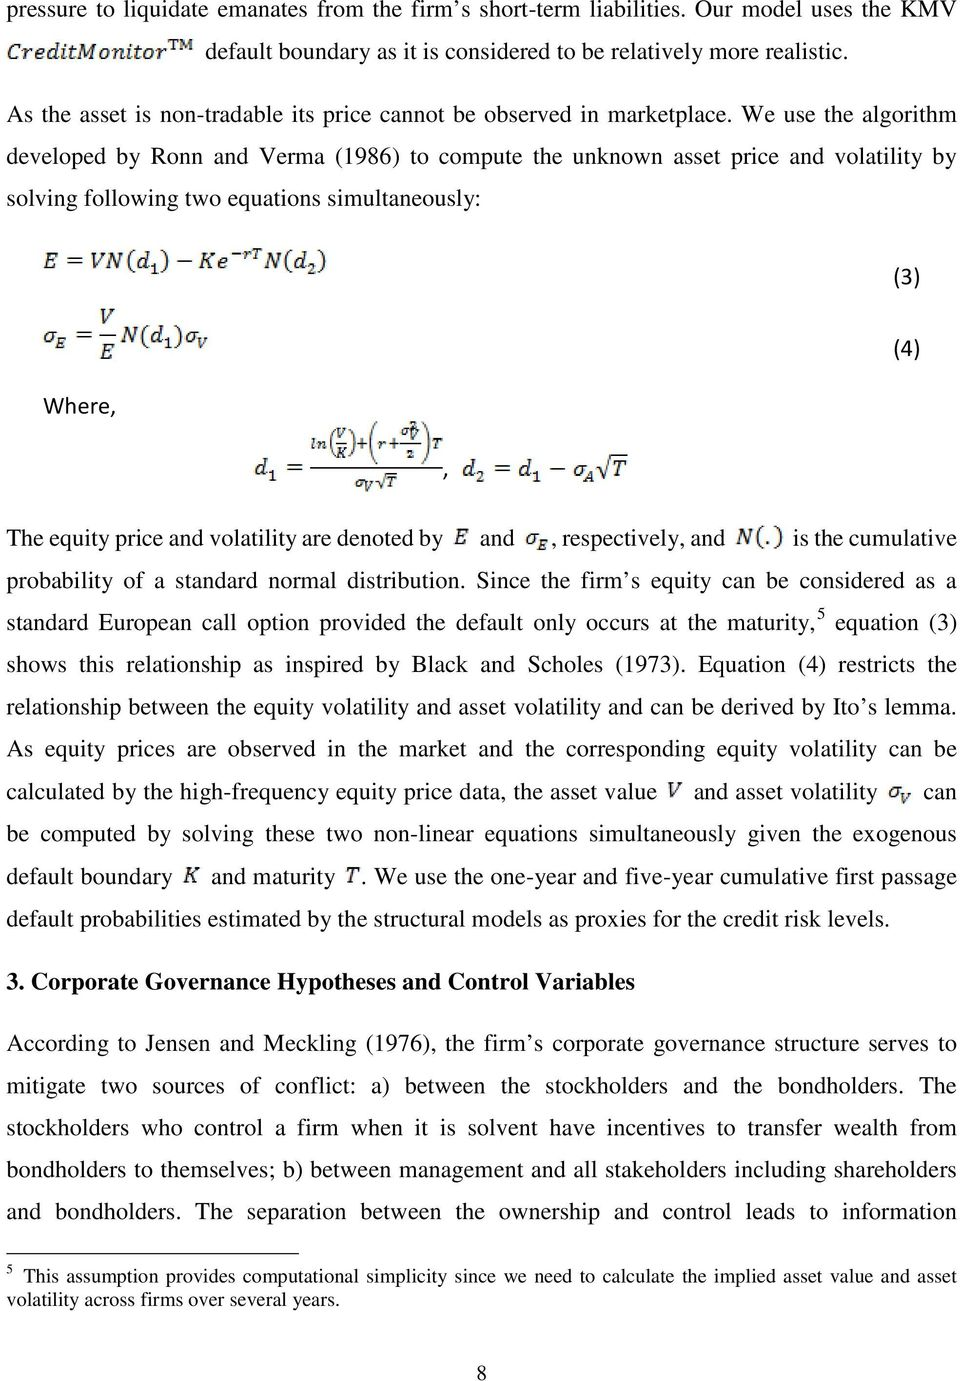 We use the algorithm developed by Ronn and Verma (1986) to compute the unknown asset price and volatility by solving following two equations simultaneously: (3) Where,, (4) The equity price and